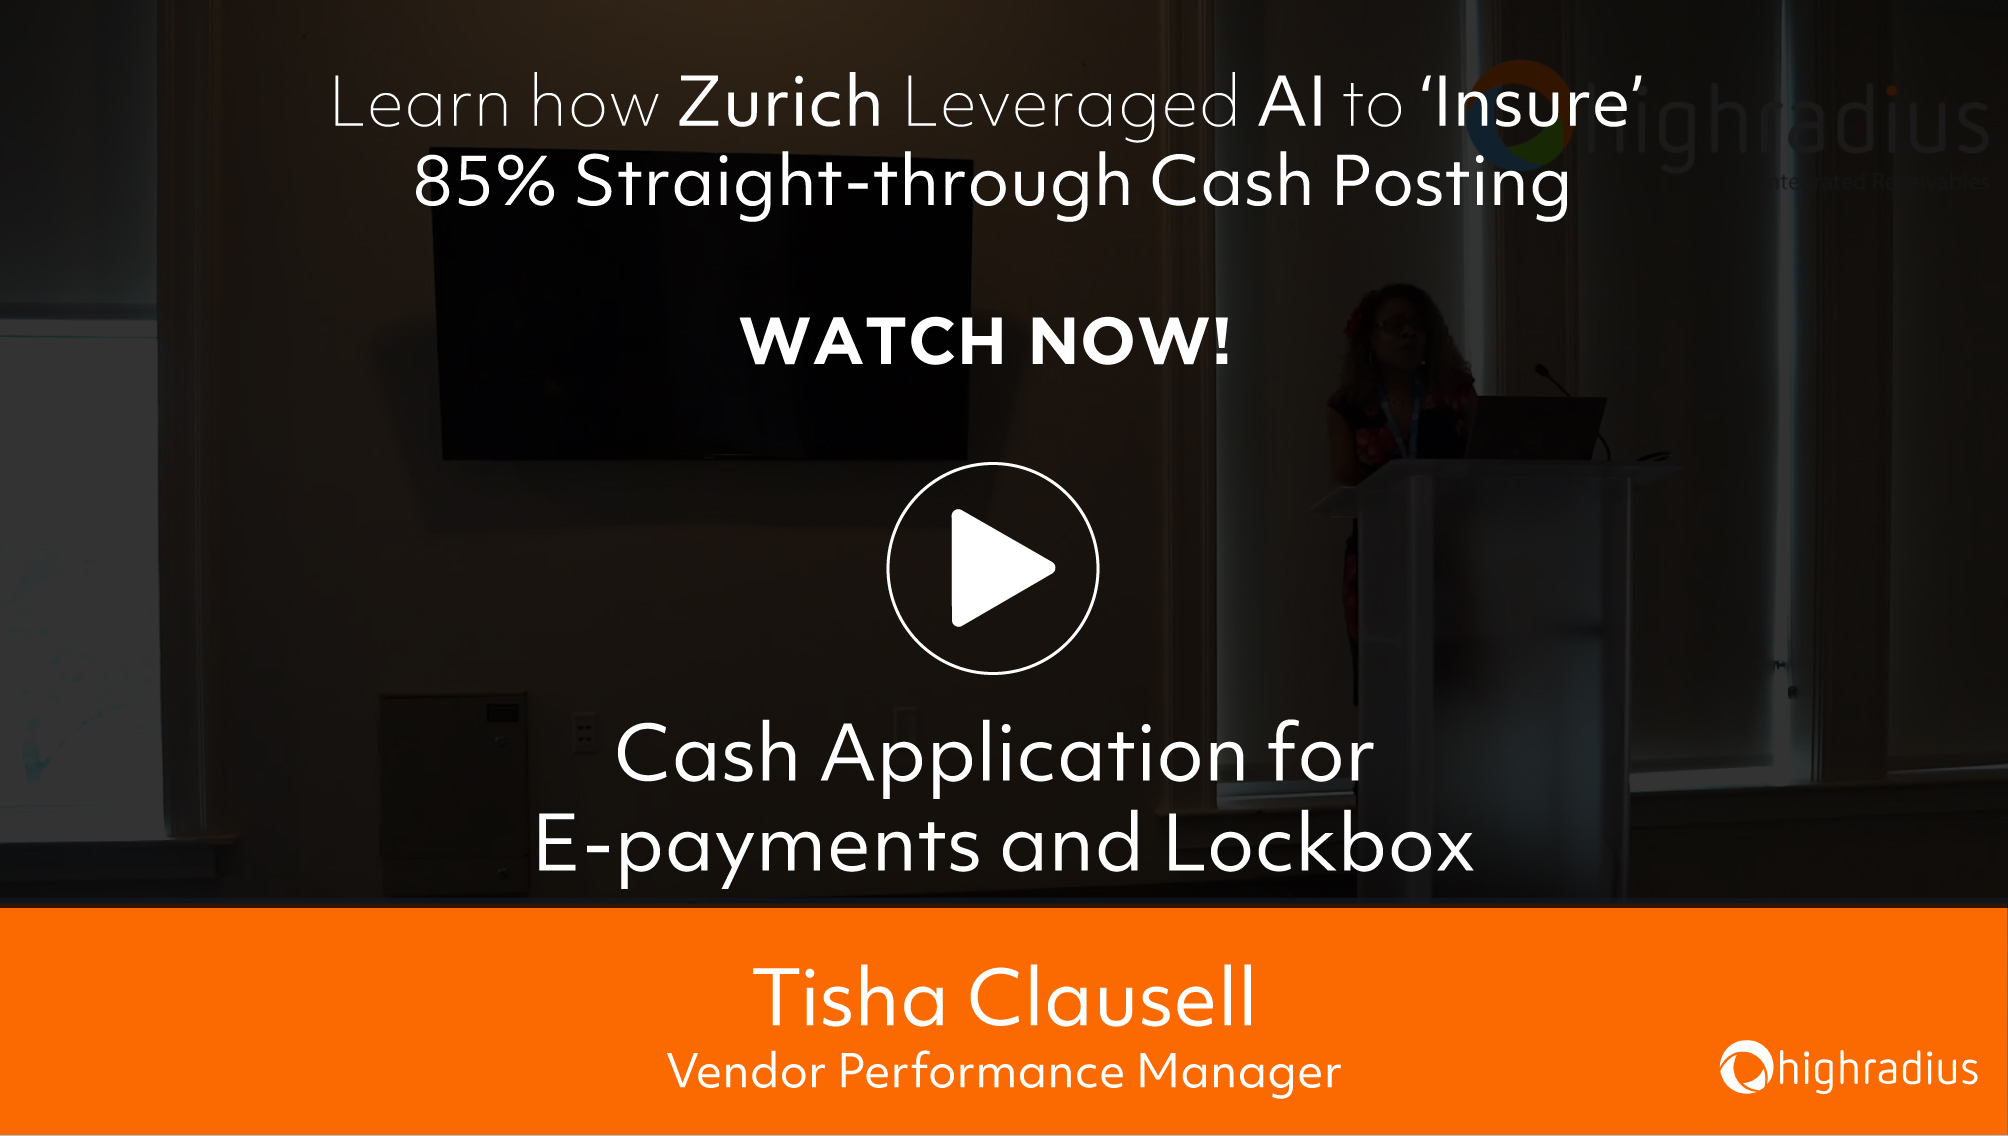 Cash Application for E-payments and Lockbox